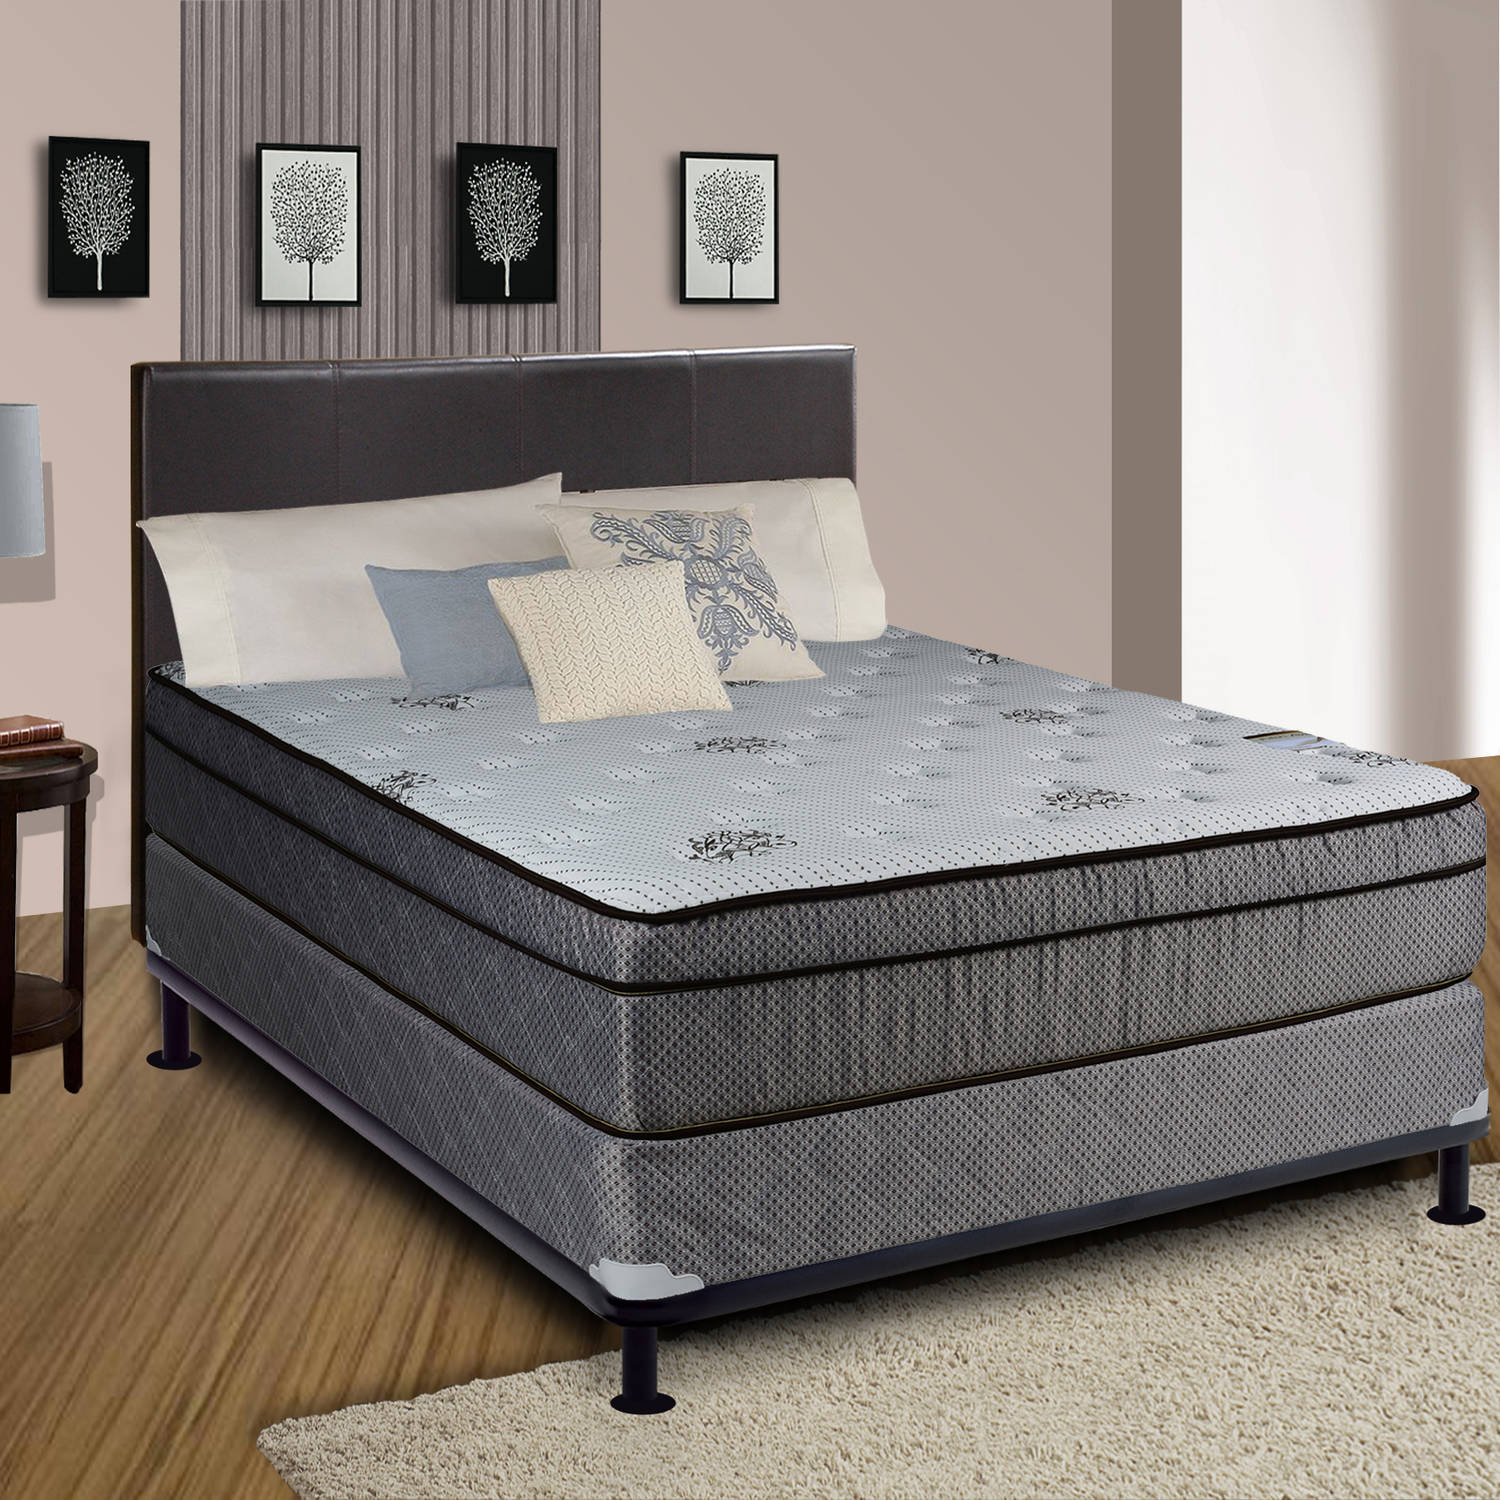 "Continental Sleep, 13"" Fully Assembled Foam Encased Soft Eurotop Innerspring Mattress Set with 8"" Box-Spring, Fifth Ave Collection, Twin Size"